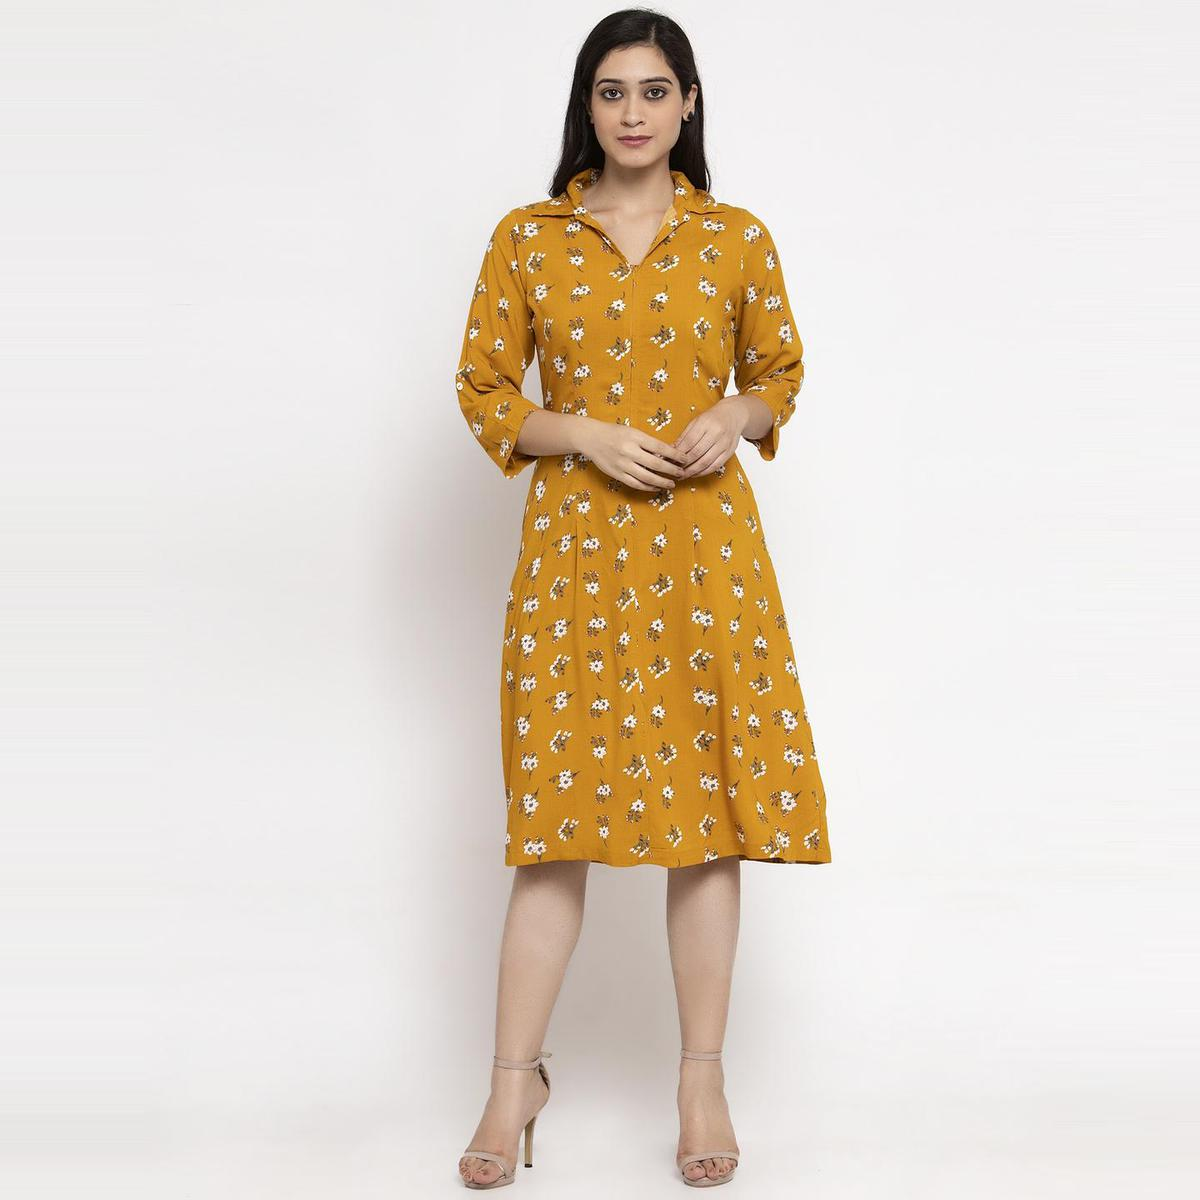 Ayaany - Mustard Yellow Colored Casual Floral Printed Cotton Dress